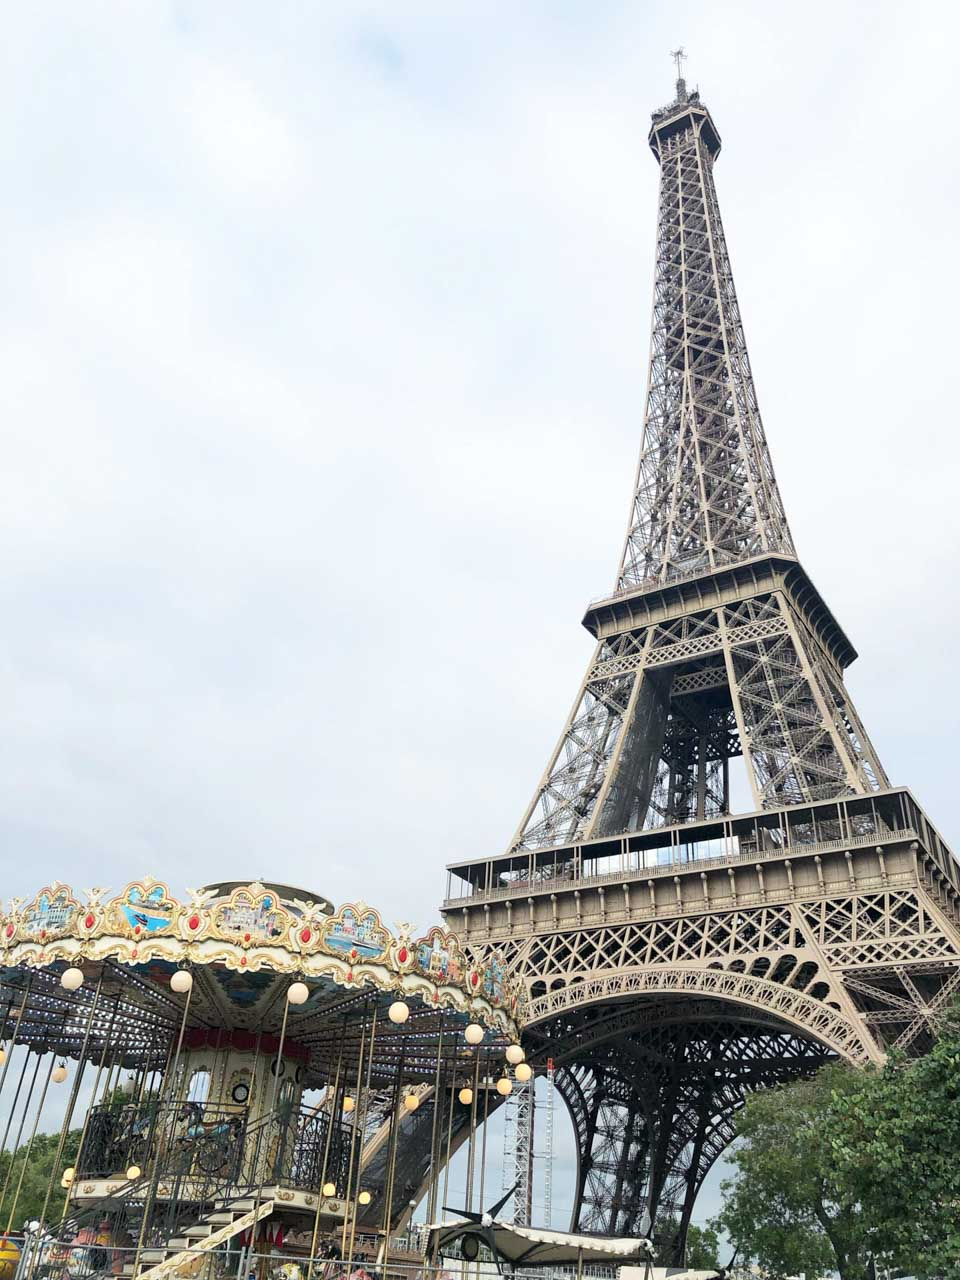 A carousel located right below the Eiffel Tower in Paris